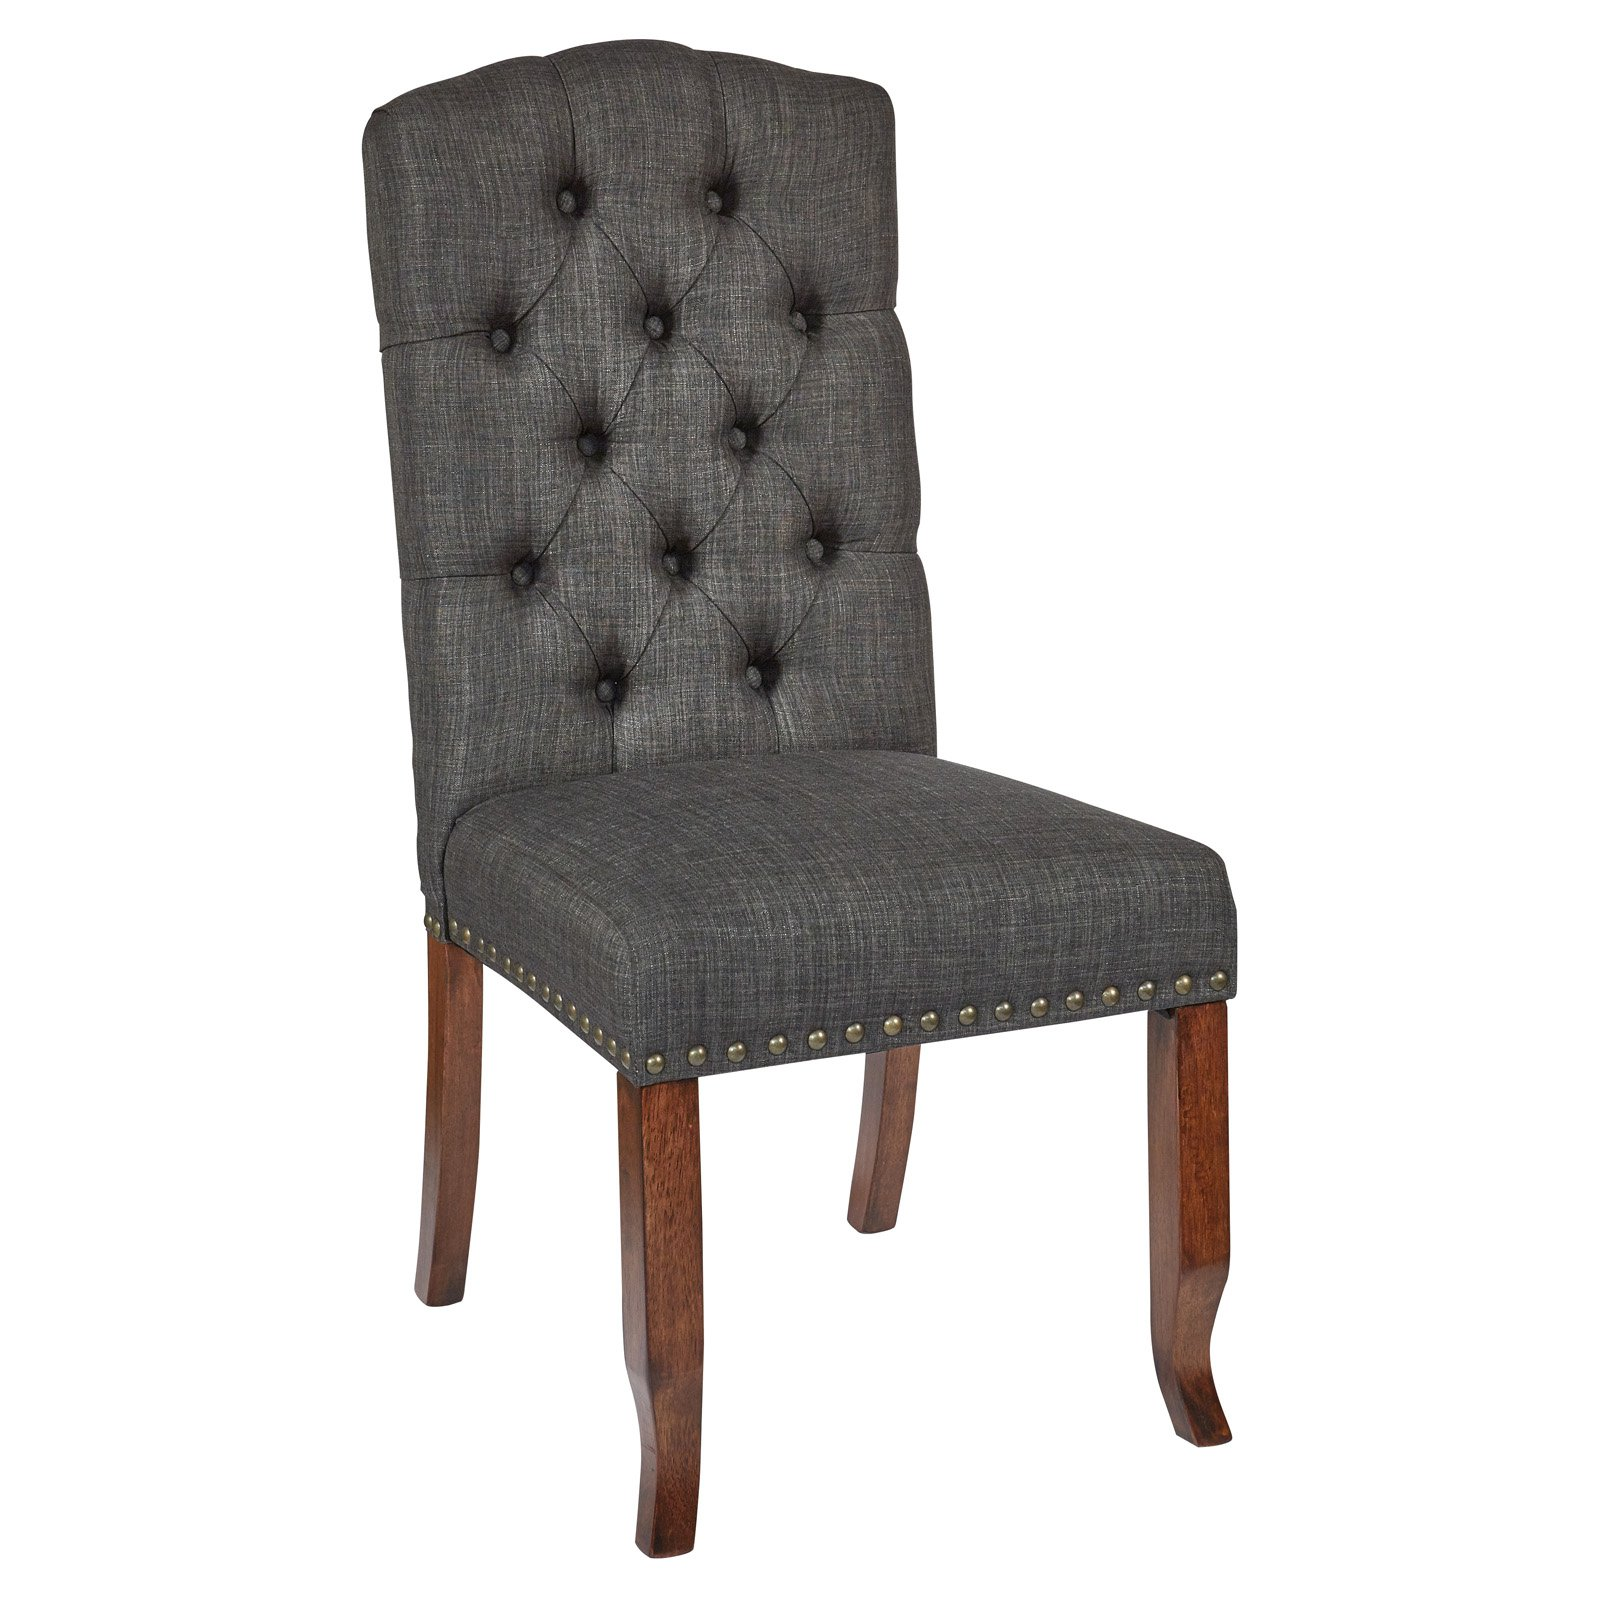 Avenue Six Jessica Tufted Dining Chair with Bronze Nailheads and Coffee Legs, K D, Various Colors by Generic